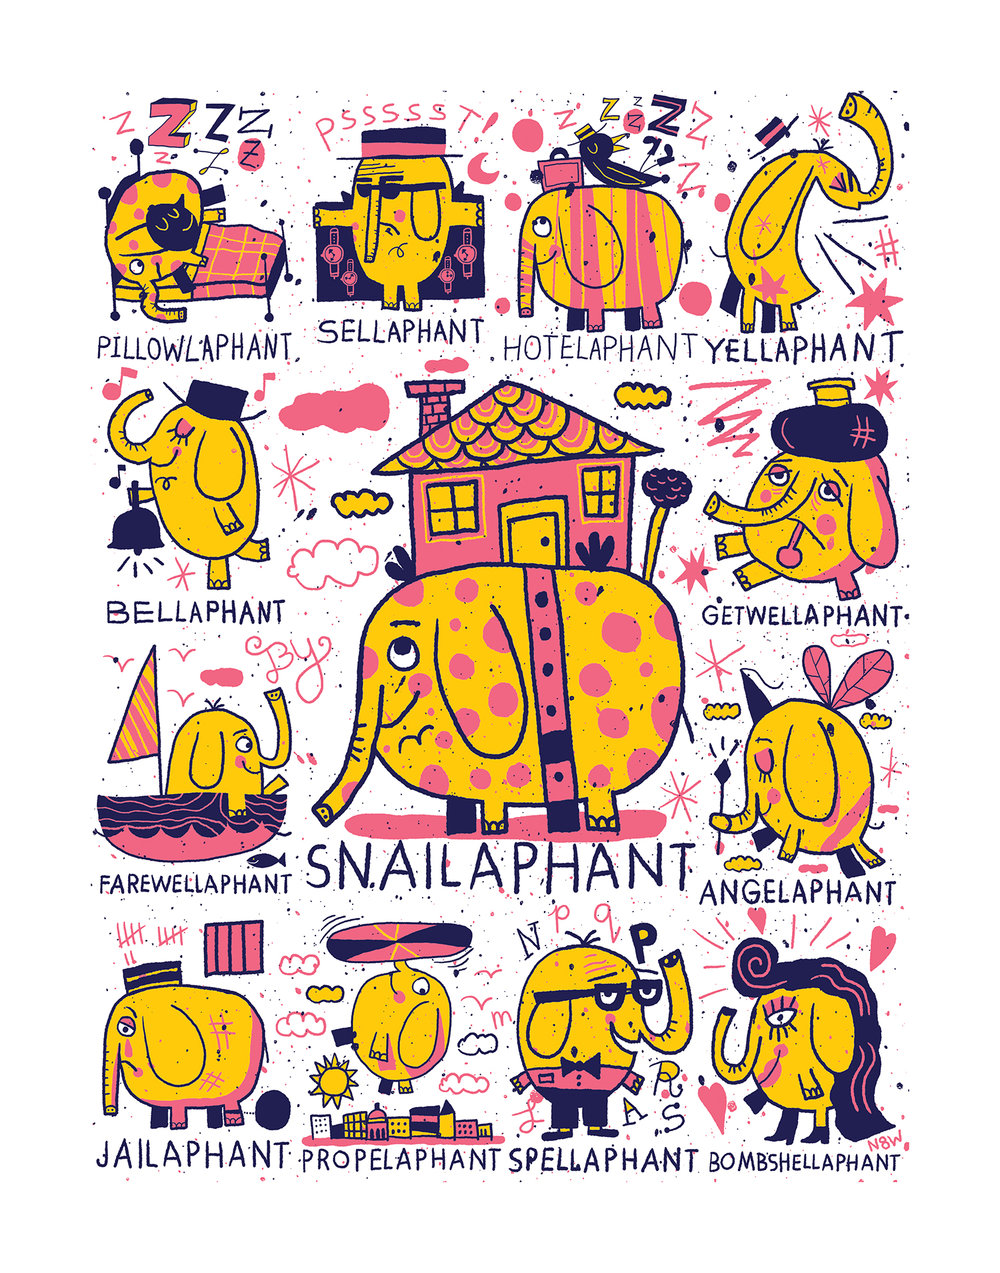 'Snailaphant' by Nate Williams